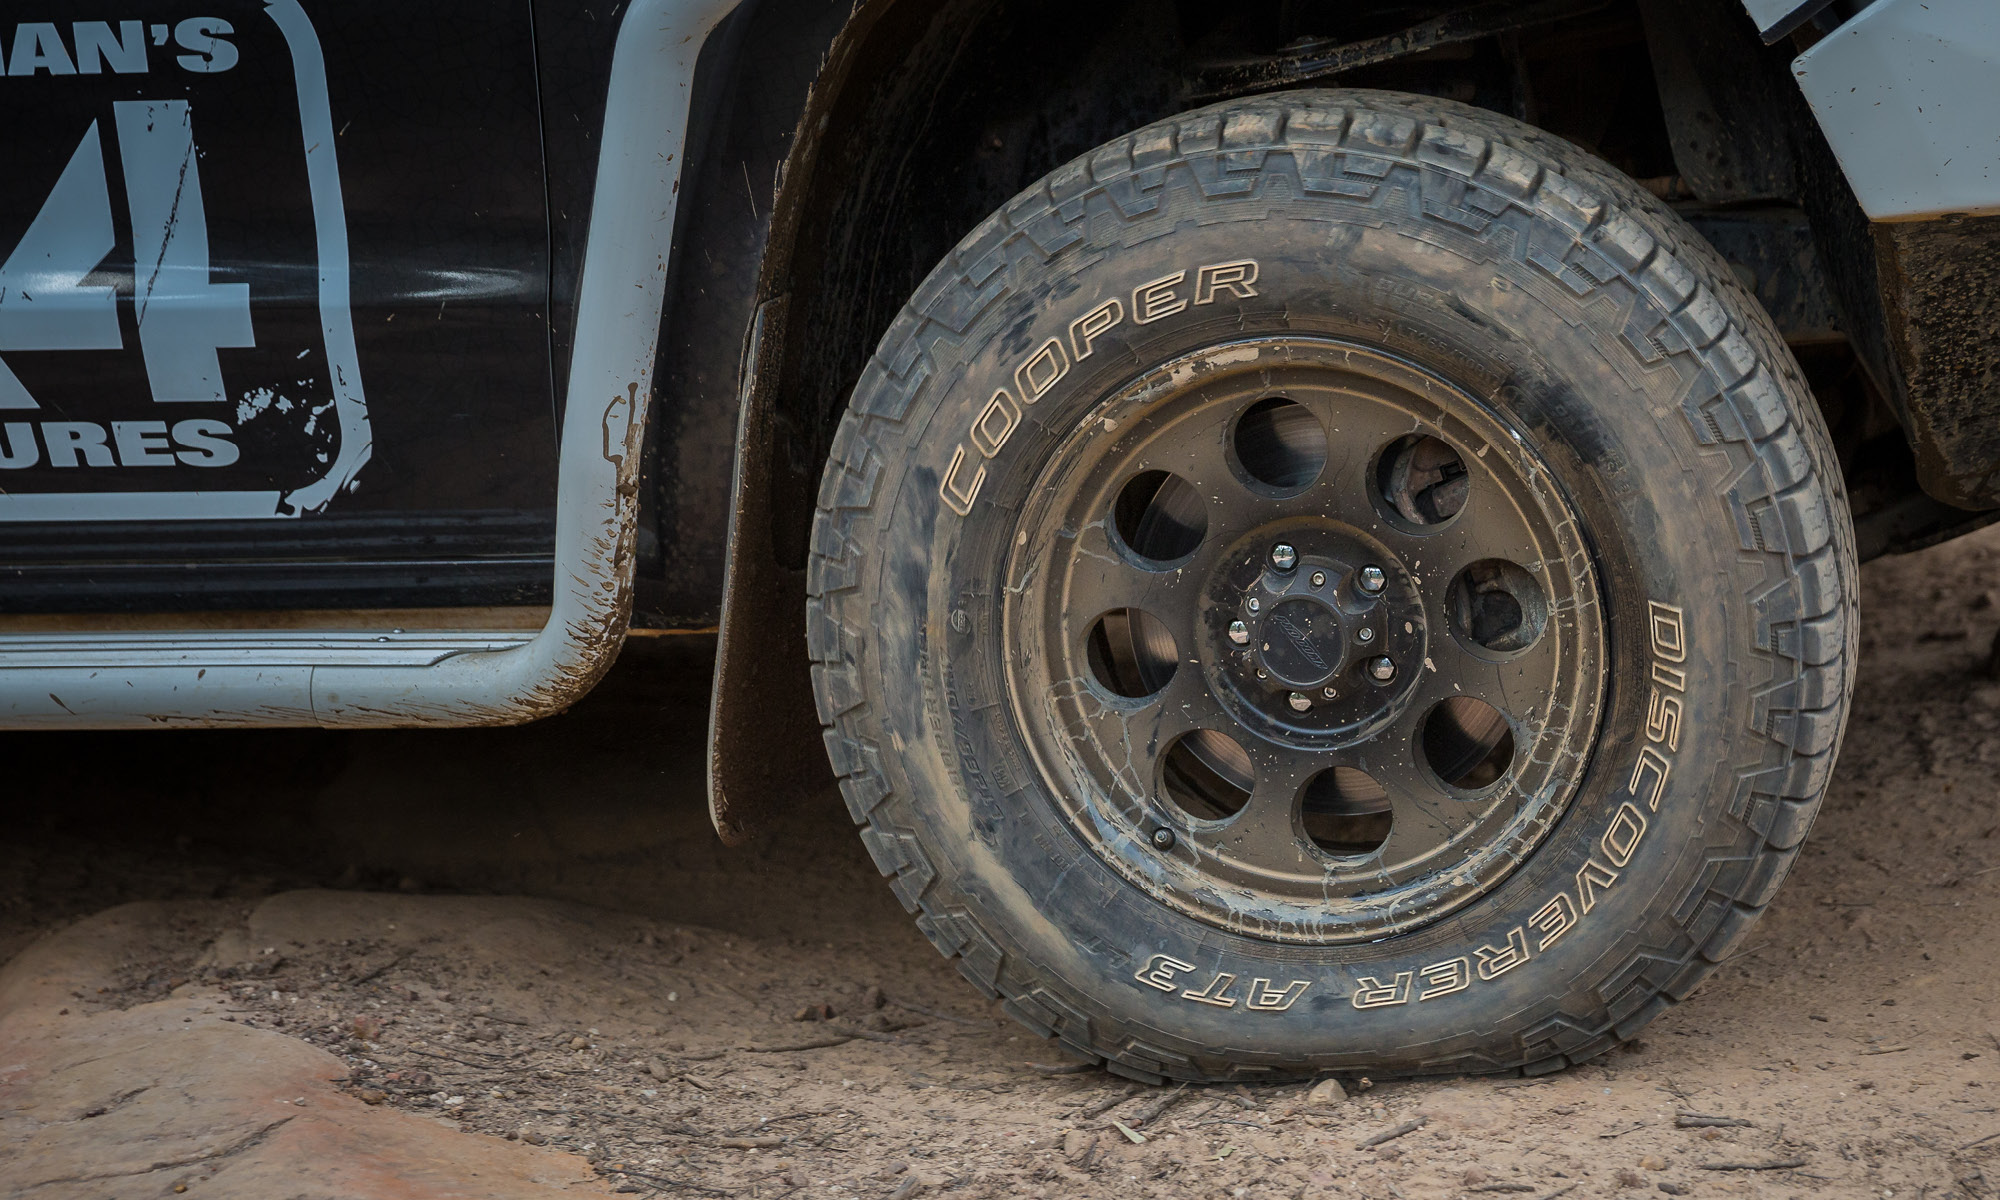 Tarmac, mud, dirt and rock. These tyres can handle it all